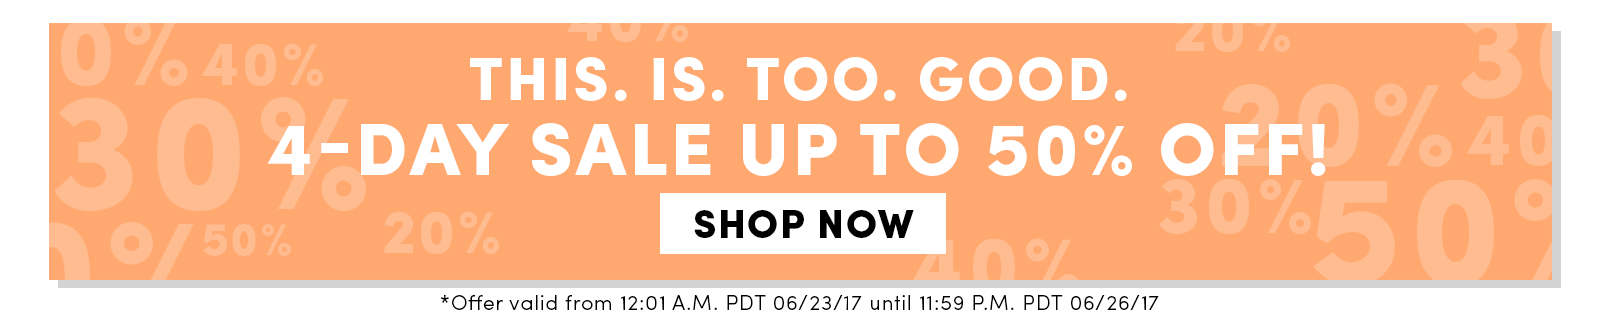 This. Is. Too. Good. 4-Day Sale Up To 50% Off! | Shop Now